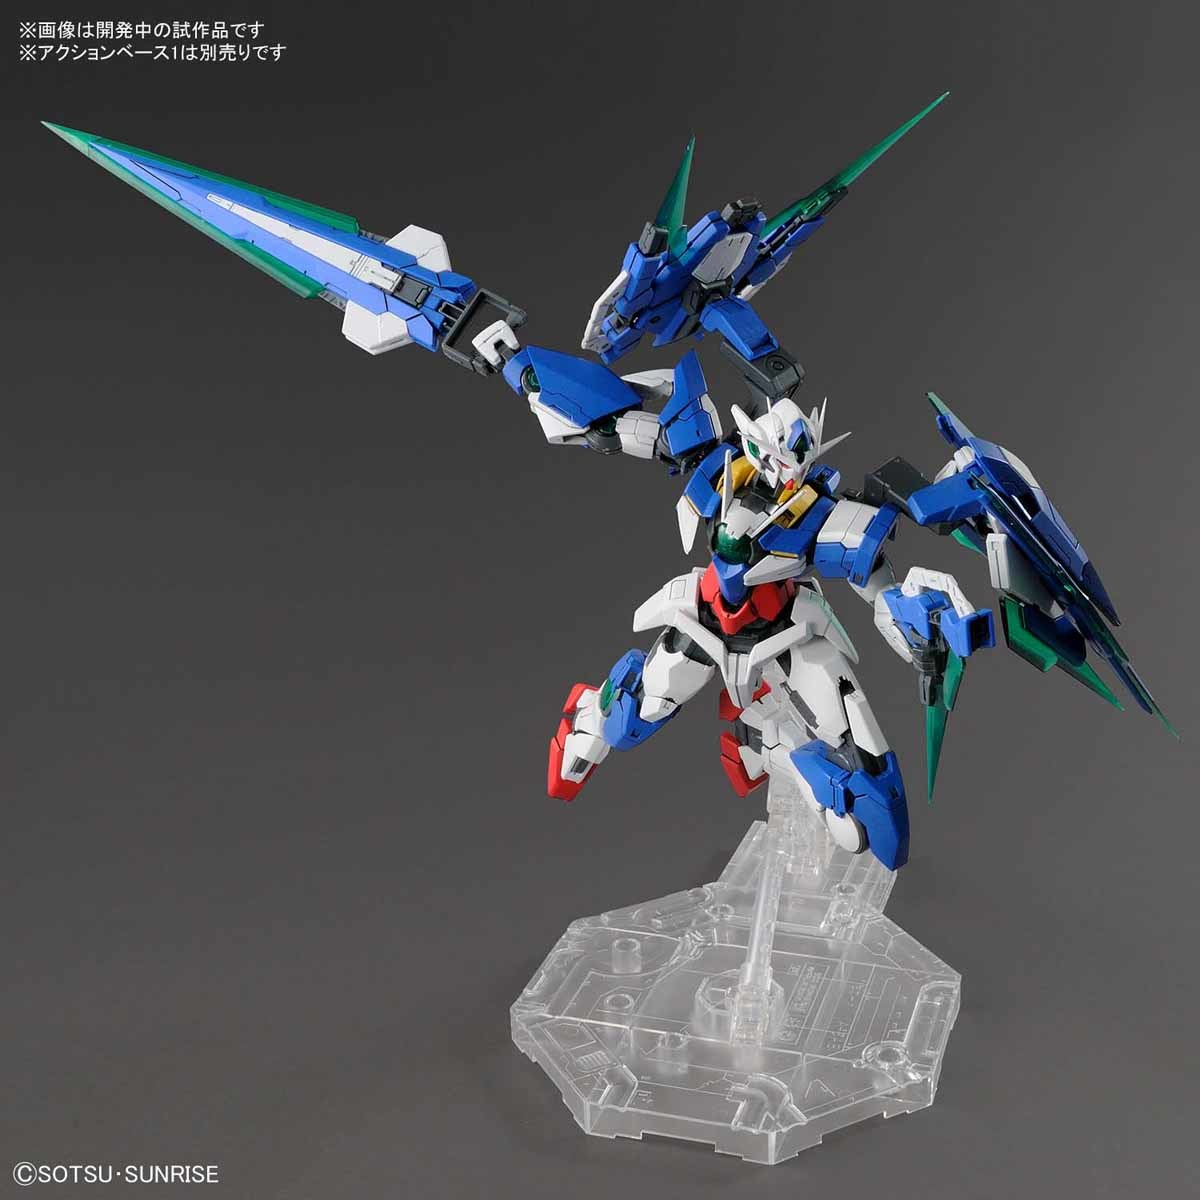 MG 1/100 00 Quanta Full Saber sword attack